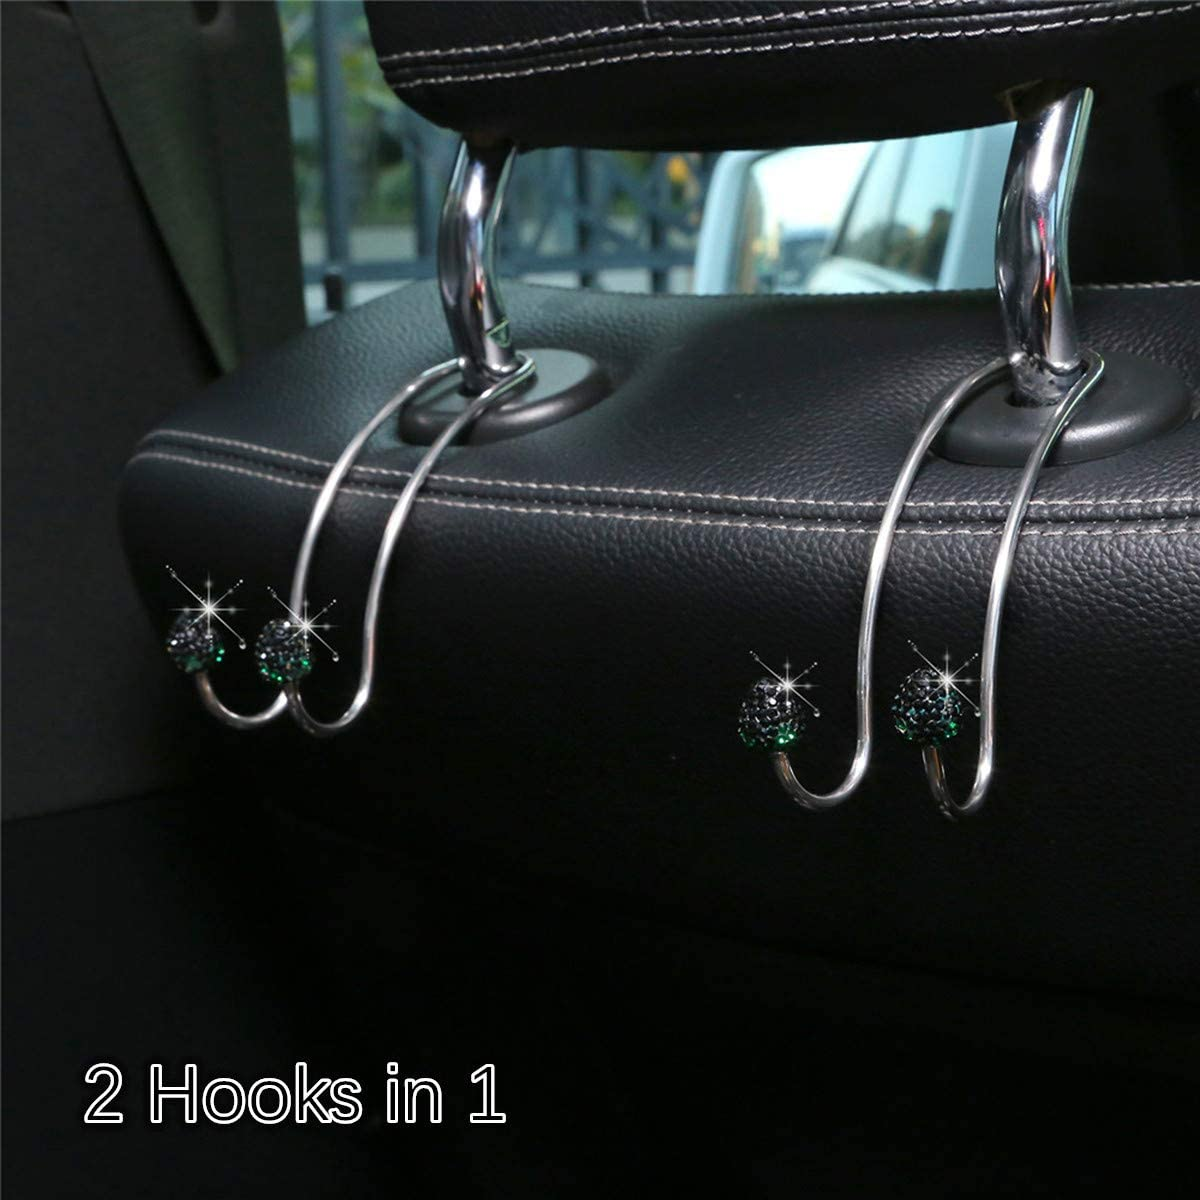 tunfo Auto Hooks Bling Car Hangers Organizer Seat Headrest Hooks Strong and Durable Backseat Hanger Storage Universal for SUV Truck Vehicle 2 Pack Black Strawberry